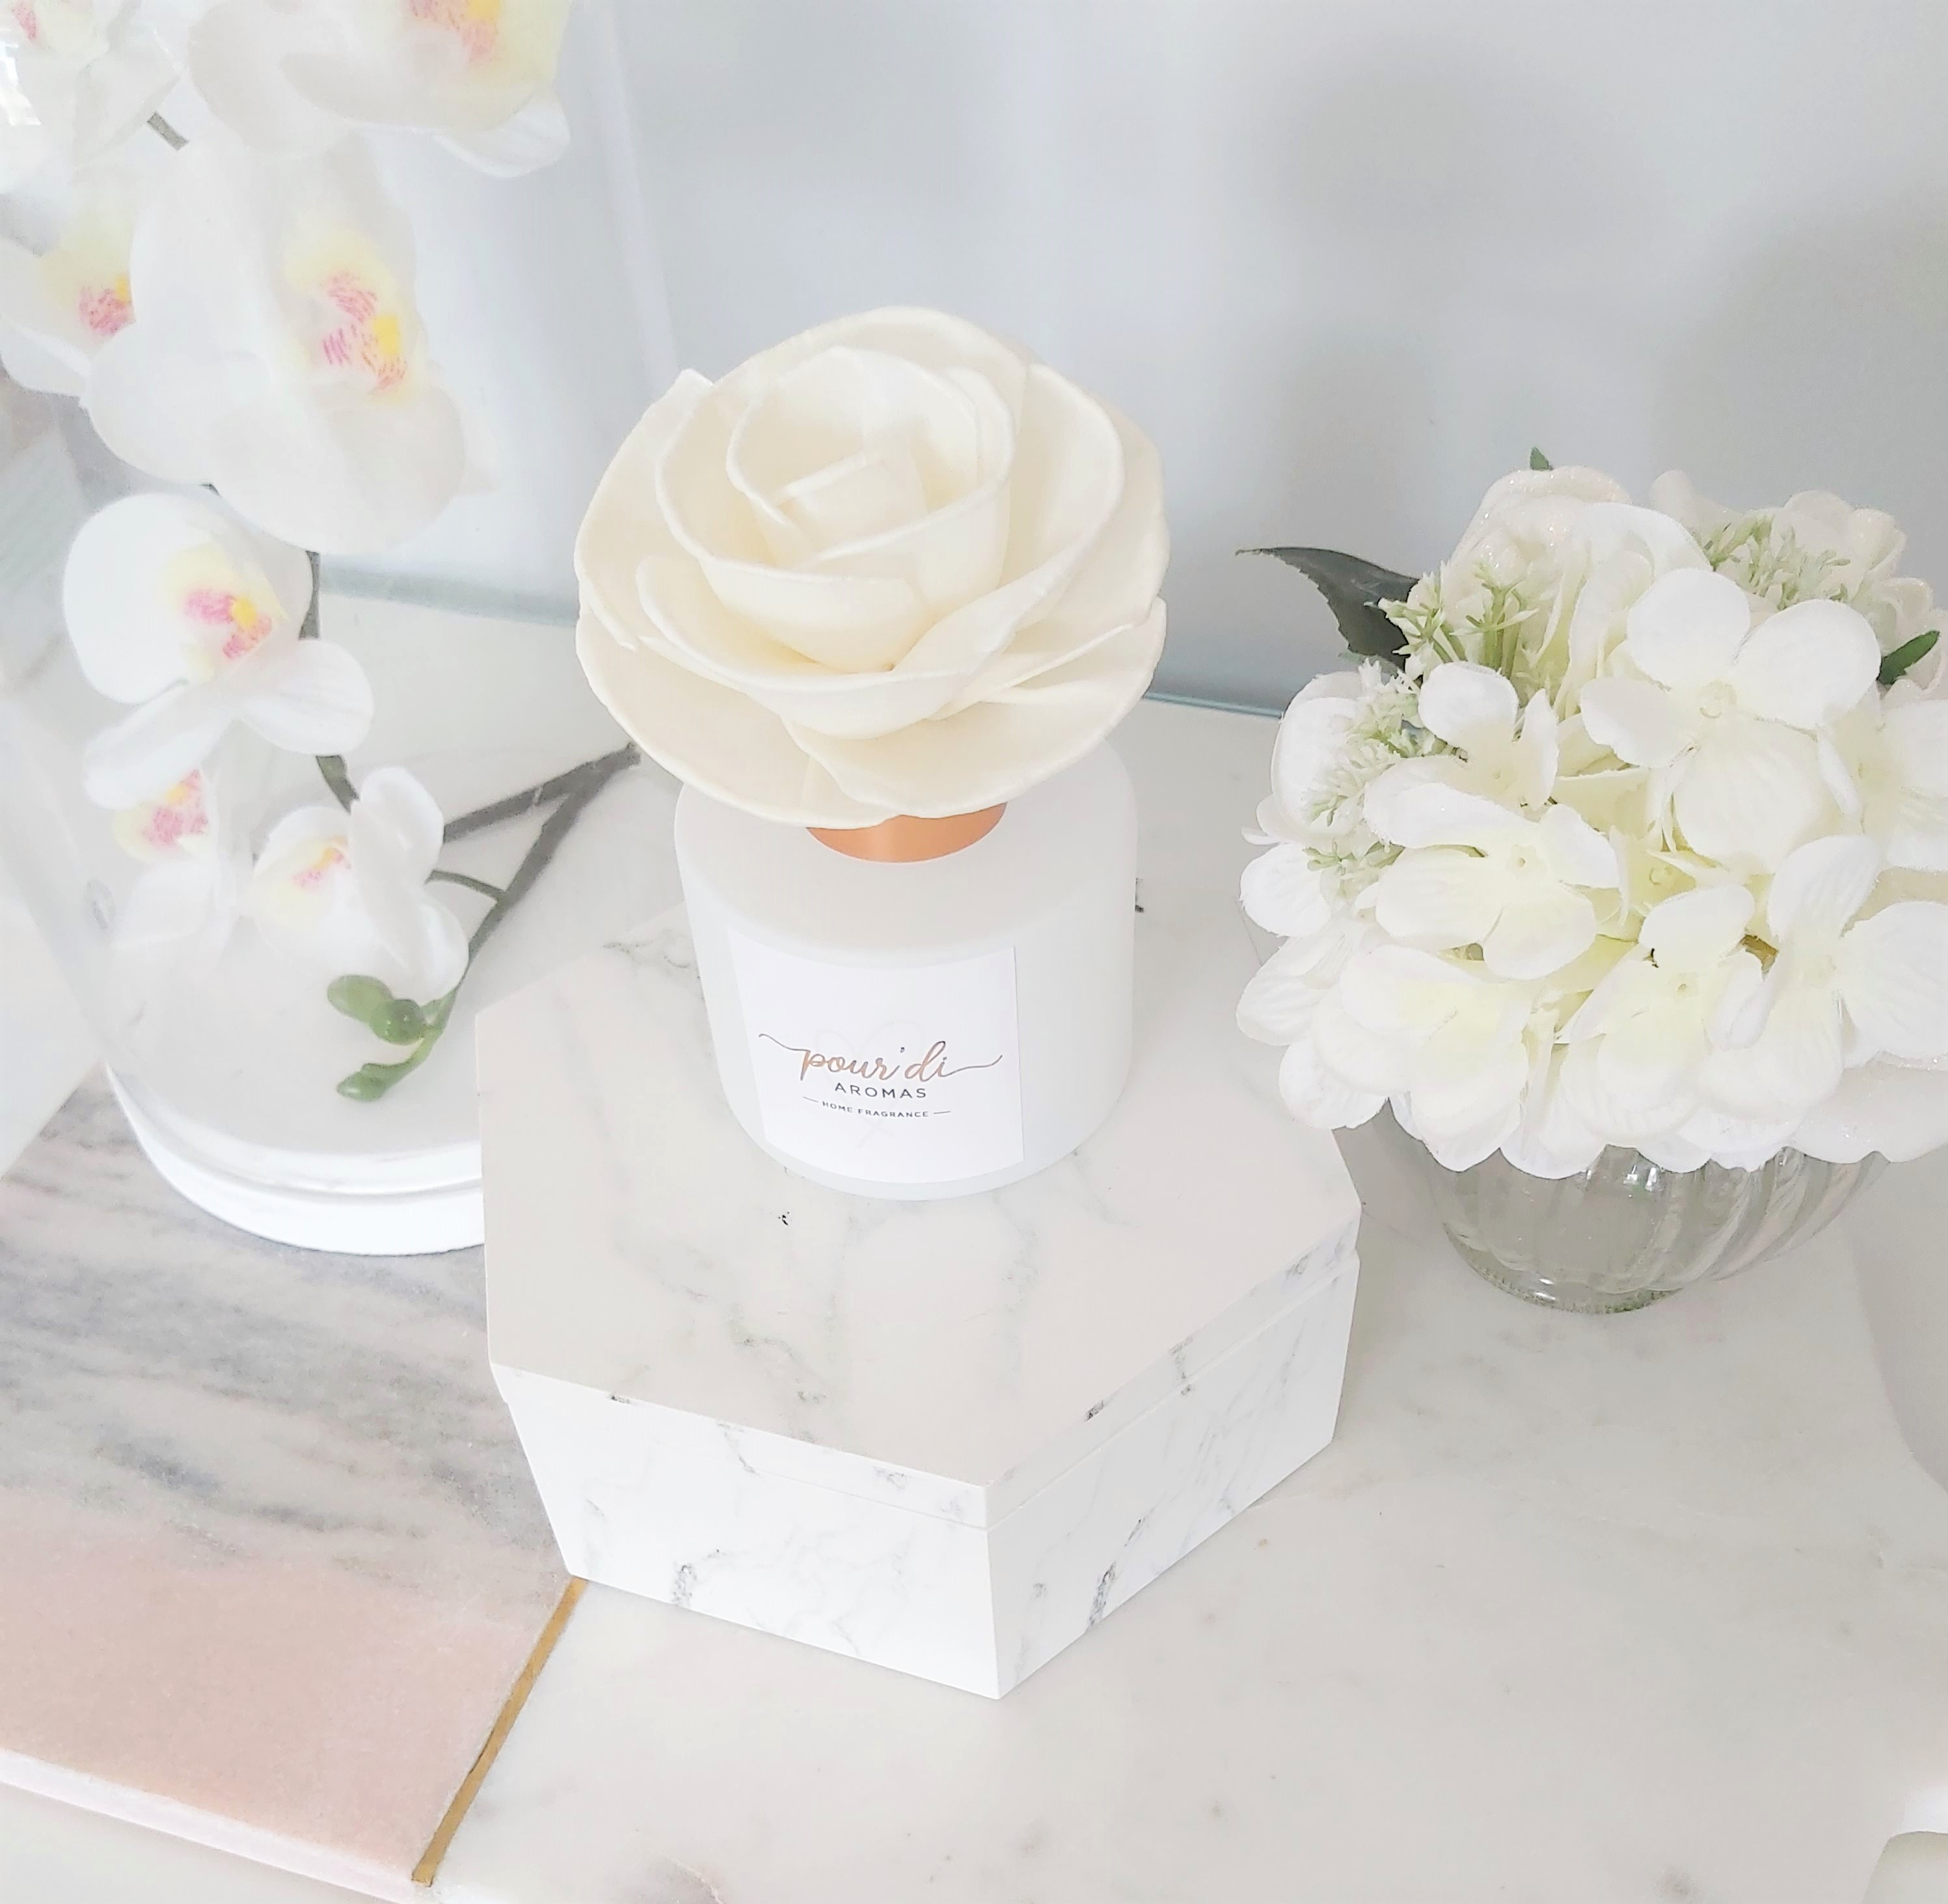 The Rose Diffuser